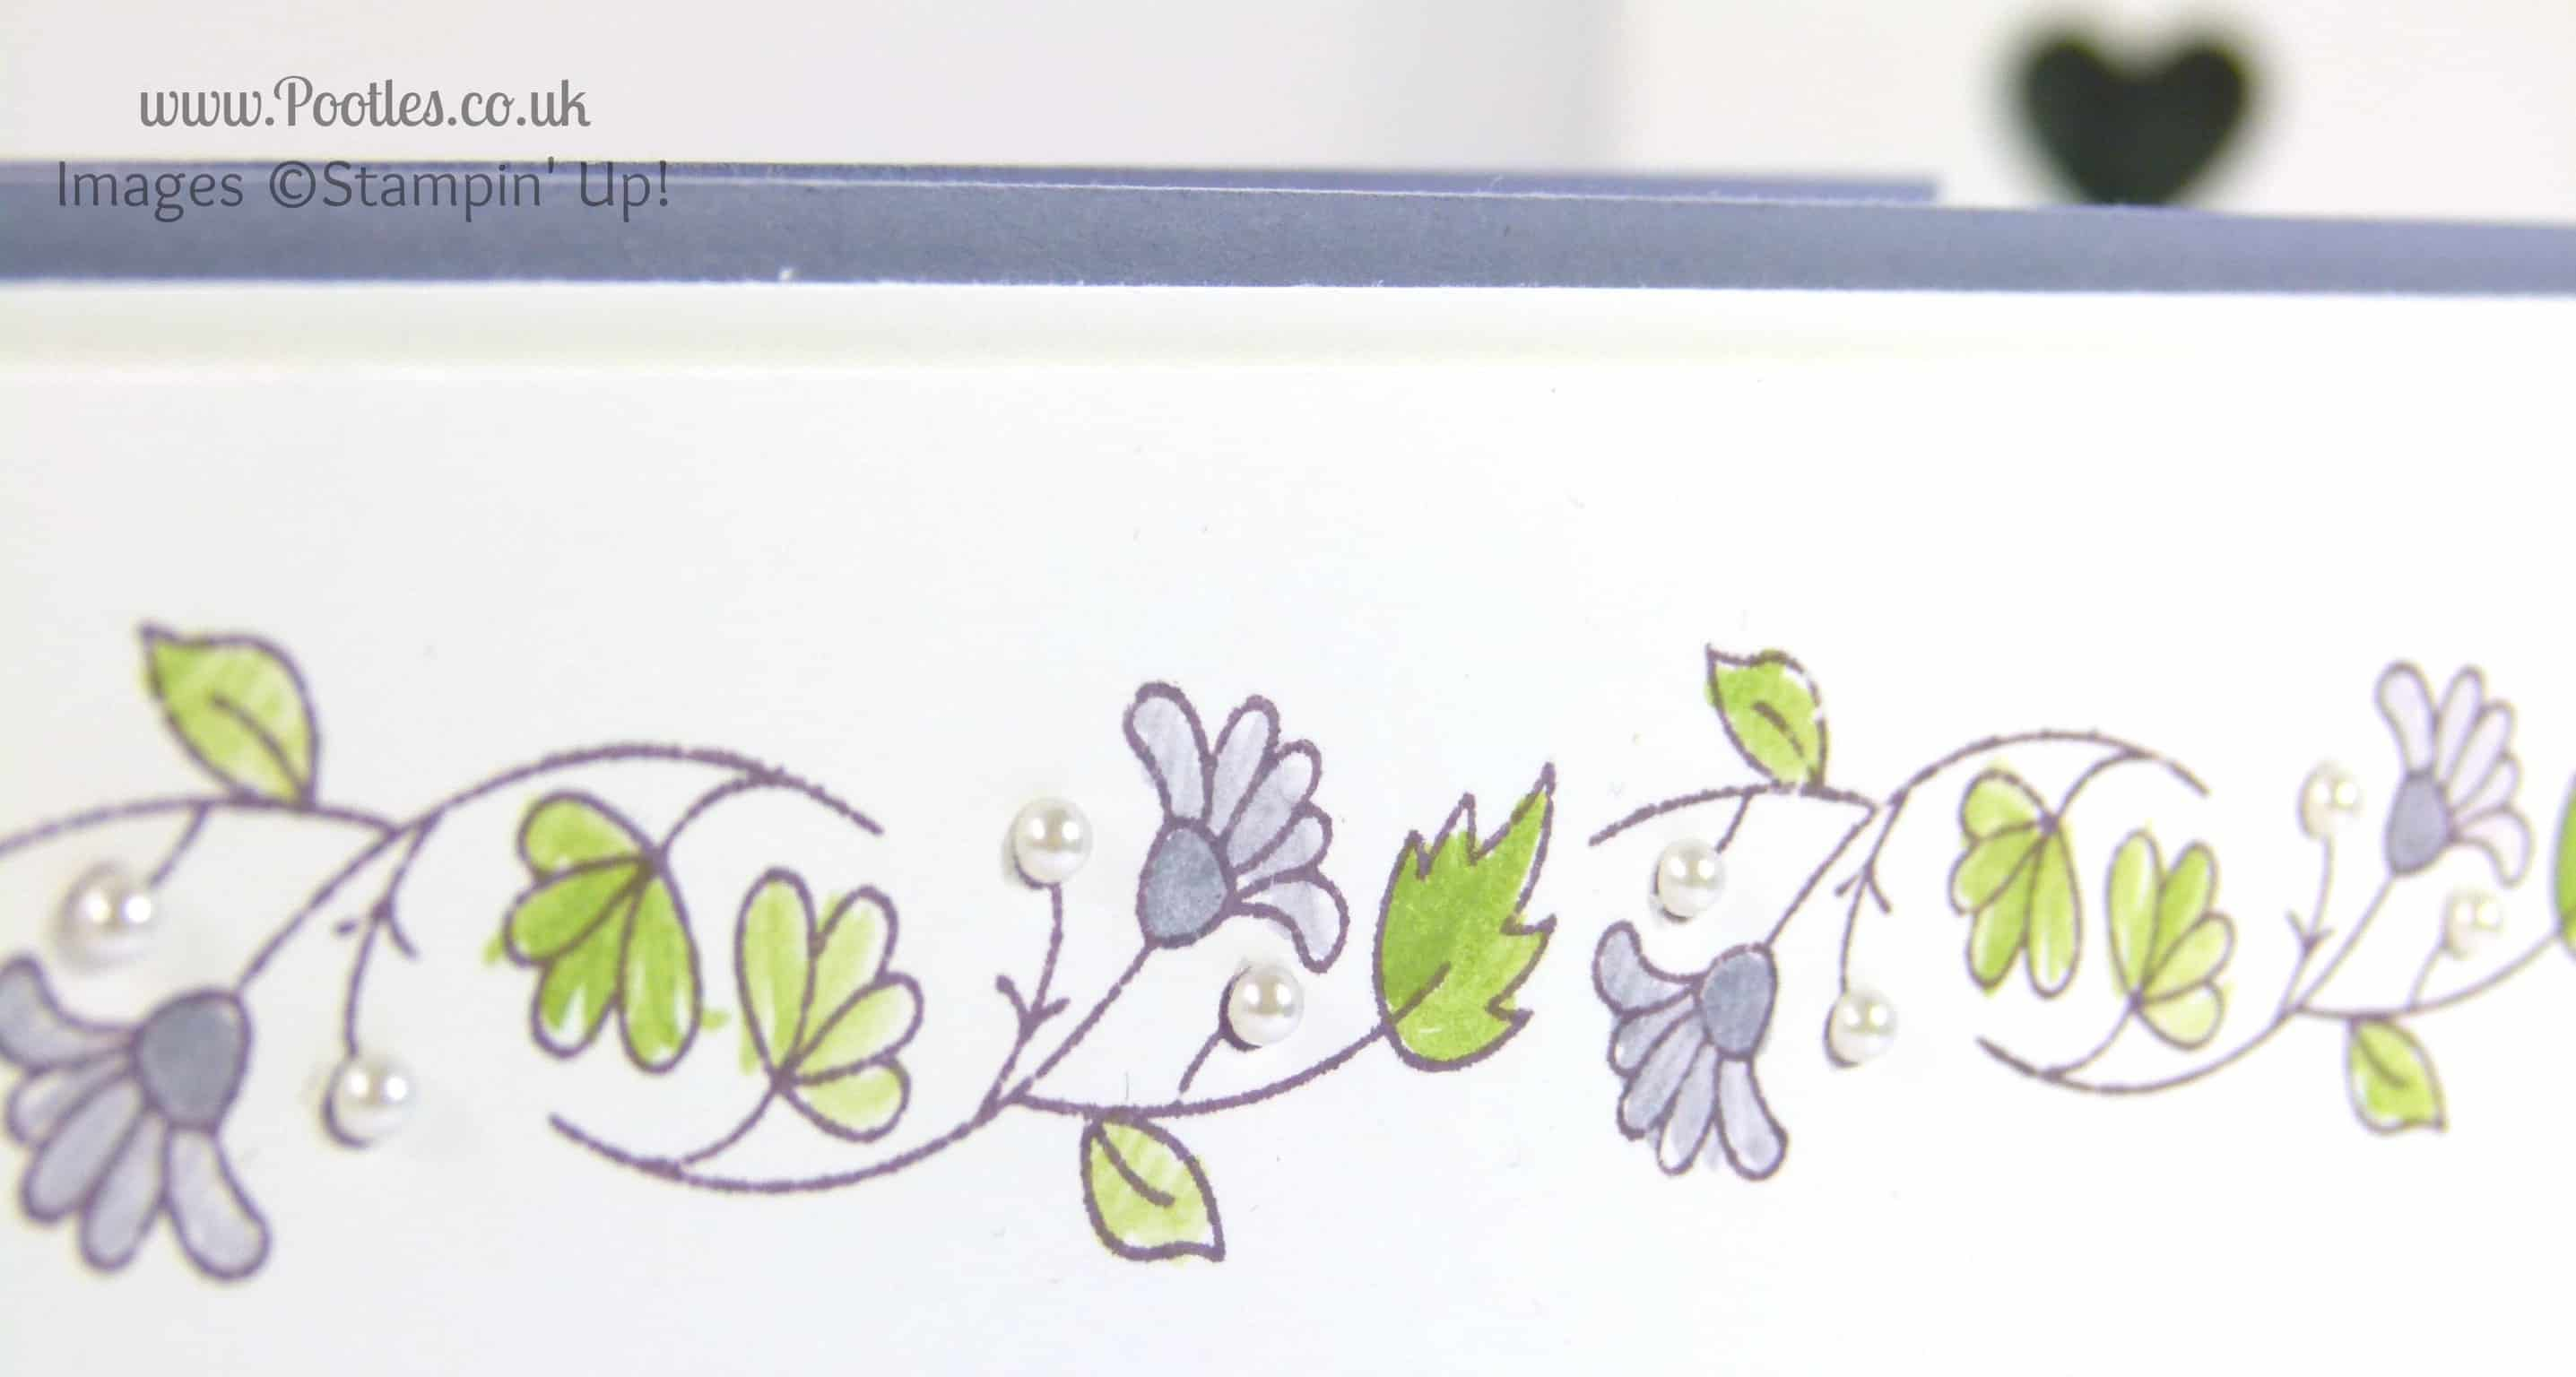 Stampin' Up! UK Demonstrator Pootles - Delicate Floral Thank You Card blender pen detail